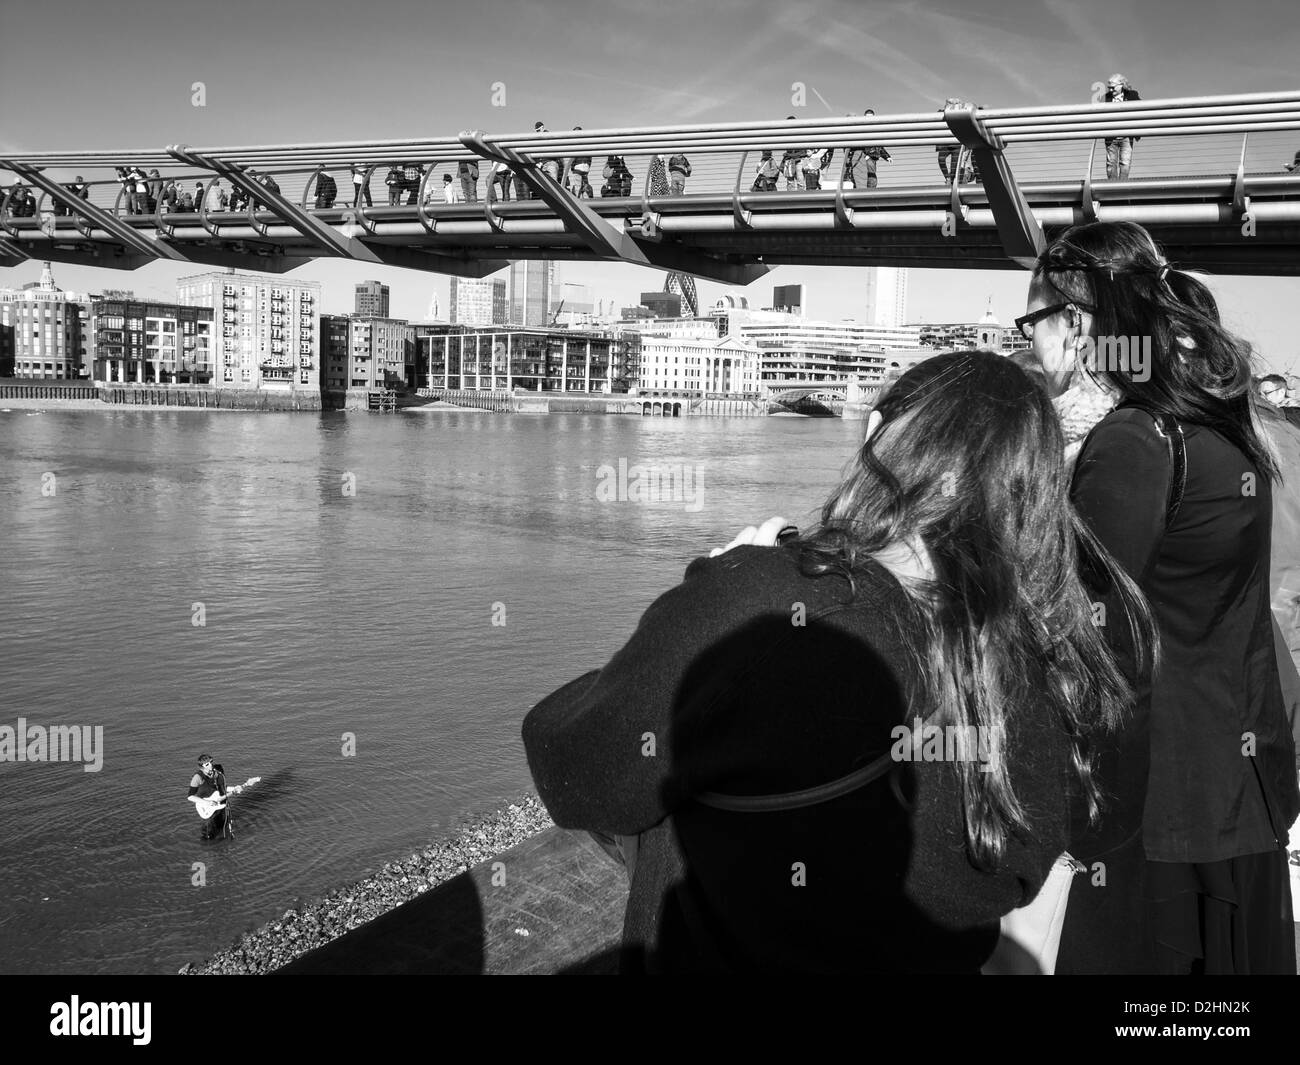 a boy playing on guitar in Thames under Millenium bridge - Stock Image